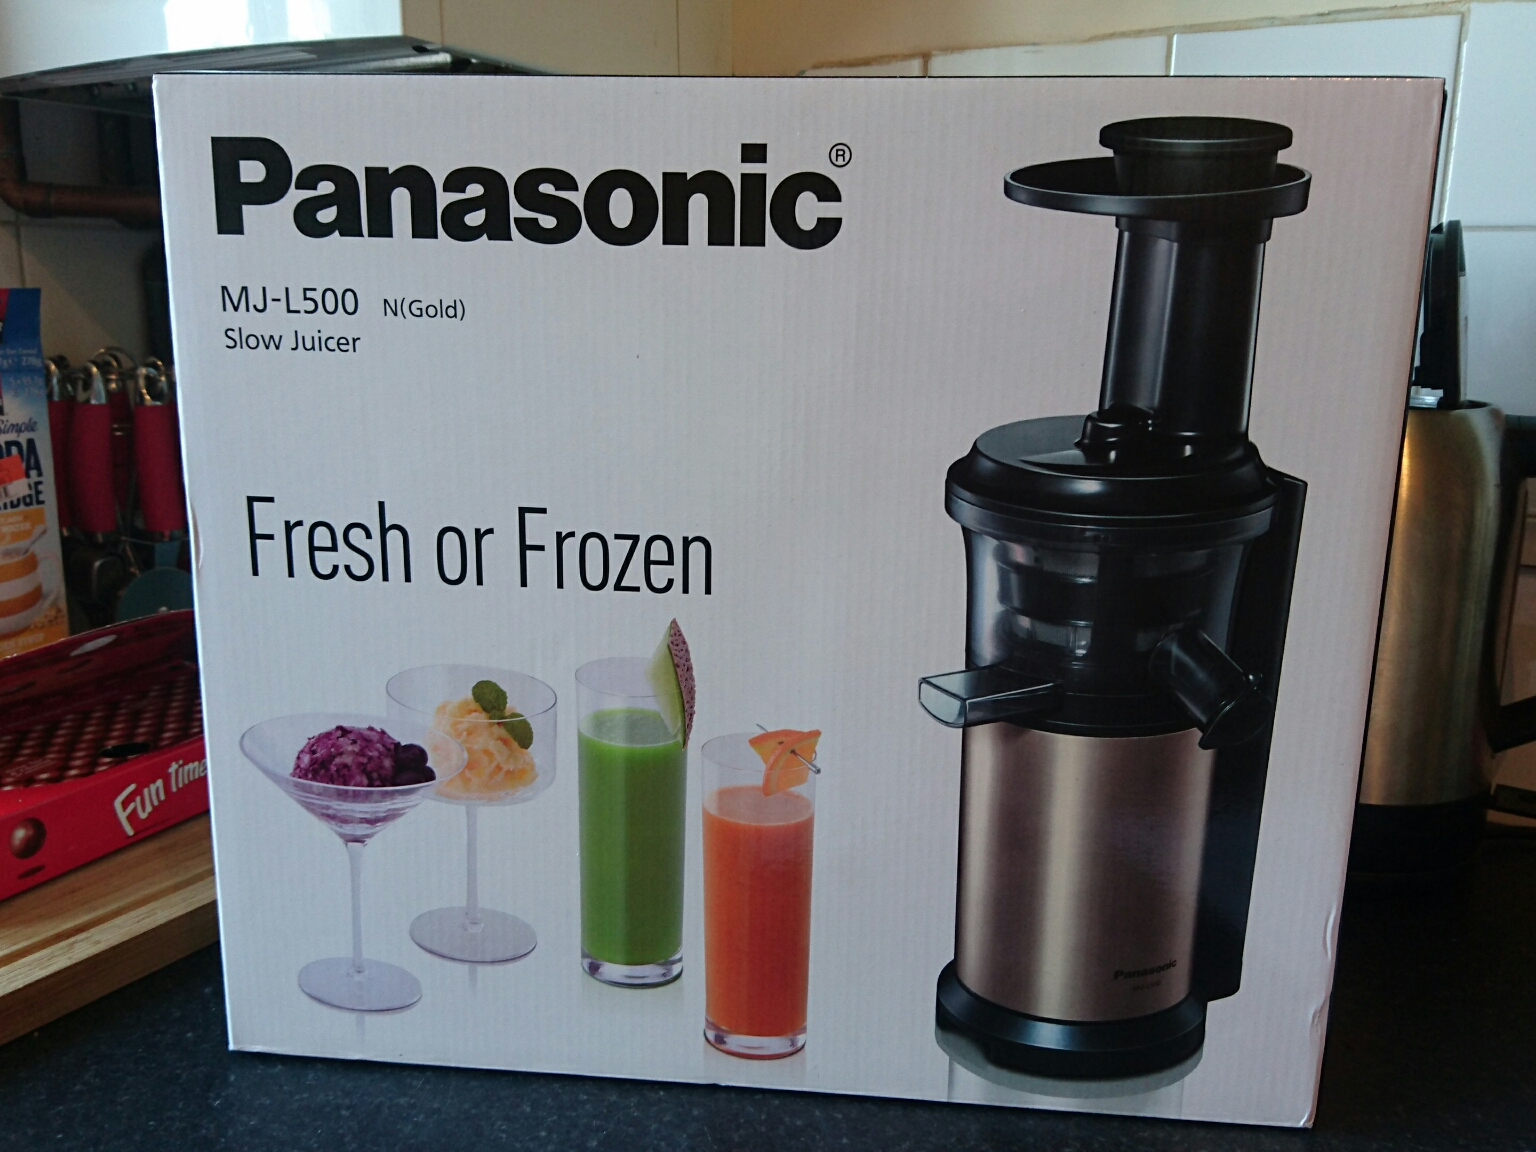 Panasonic Slow Juicer Recipe : United Cakedom: Panasonic Slow Juicer: MJ-L500 Review